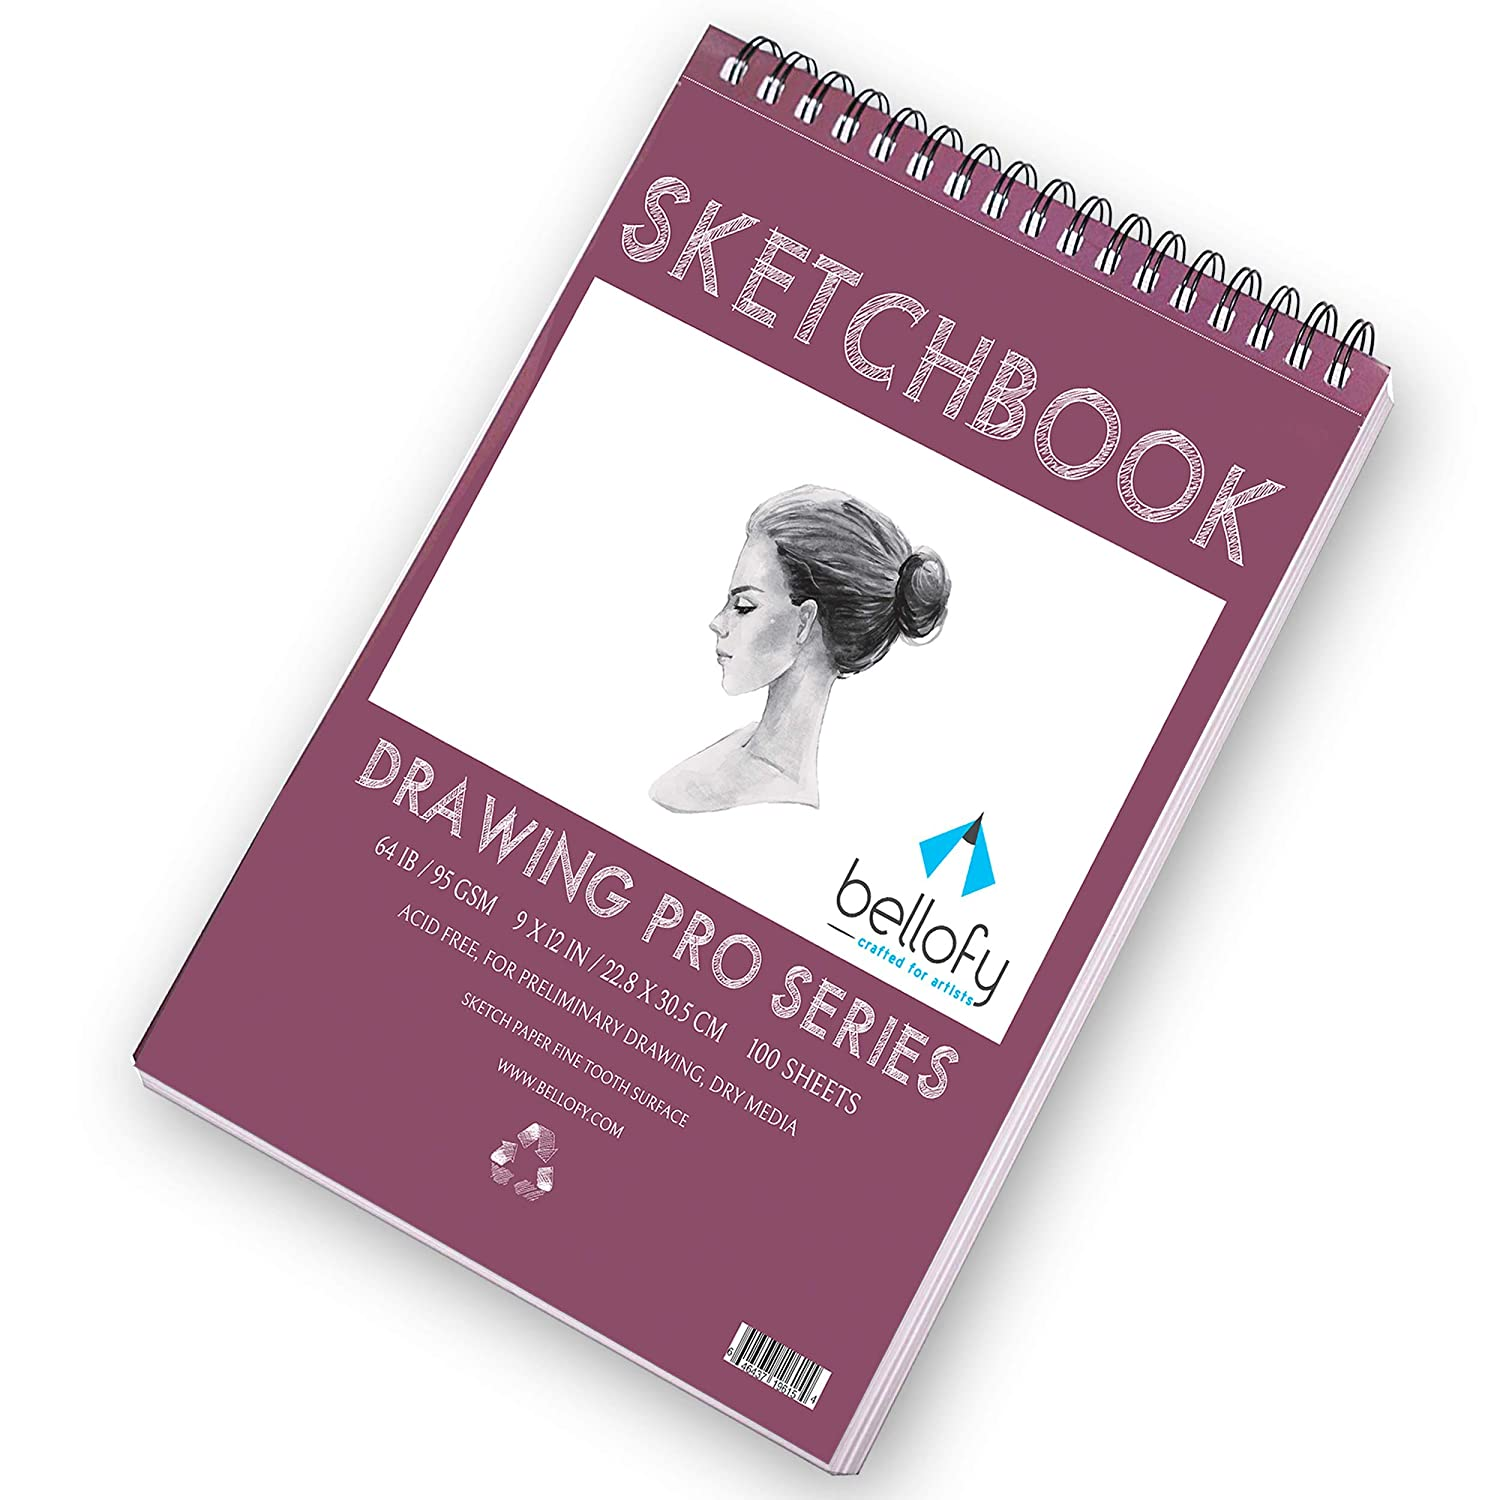 Bellofy 100 Sheet Sketch Book 9x12-Inch Sketching and Drawing Paper Top Spiral-Bound Sketchpad for Artist 64 IB 95 GSM Micro-Perforated /& Acid Free